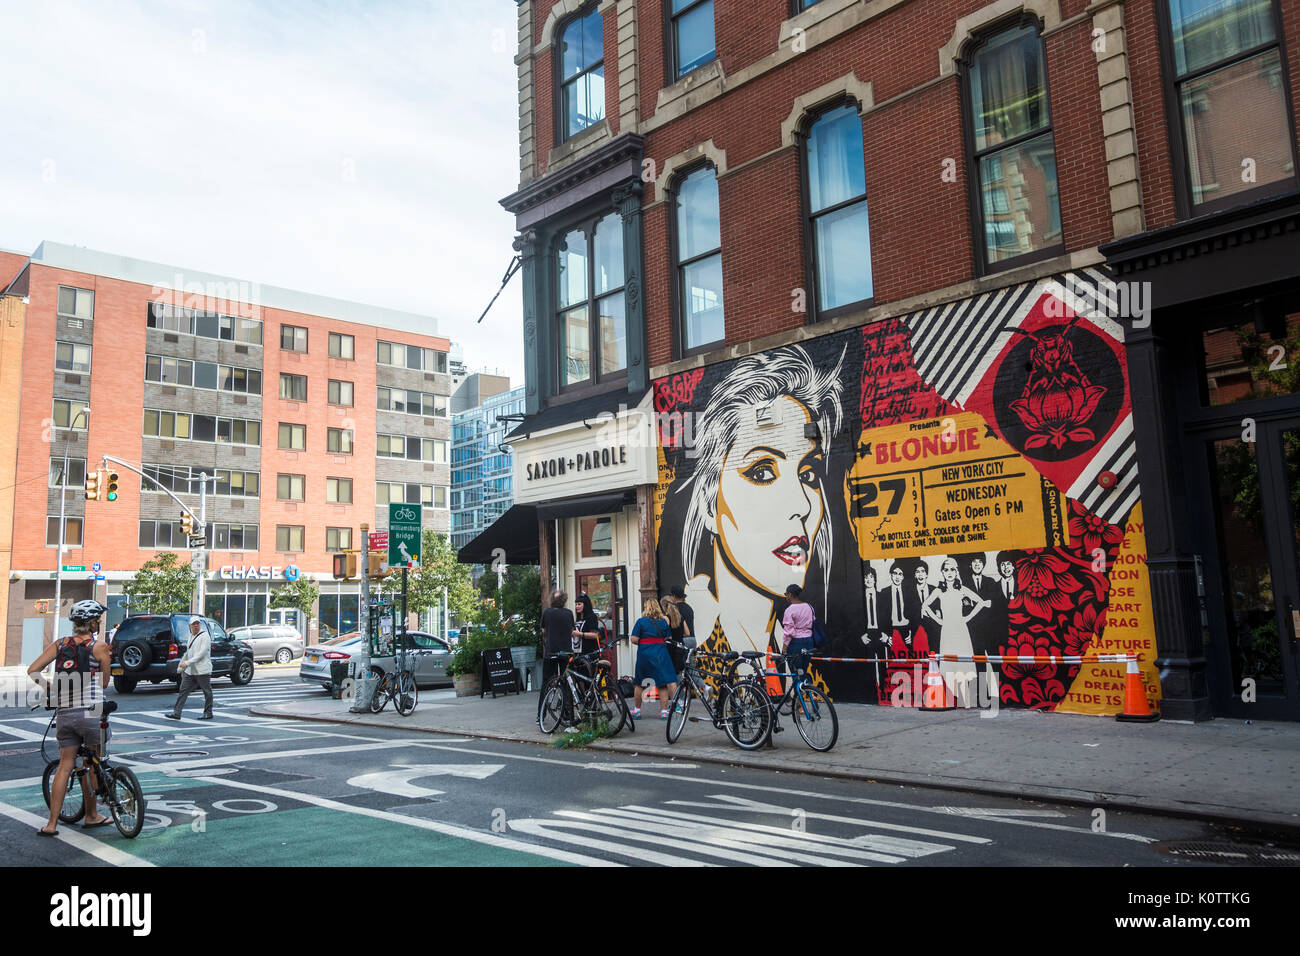 """New York, USA. 23rd Aug, 2017. Passersby stop to admire a newly completed mural, by Shepard Fairey, in the East Villagehe mural features Debbie Harry, lead singer for the rock group Blondie, who got their start in 1979 at CBGB which was located across the street. Fairy's work is also featured in Blondie's latest album """"Polinator"""" which was released in May 2017. Credit: Stacy Walsh Rosenstock/Alamy Live News - Stock Image"""